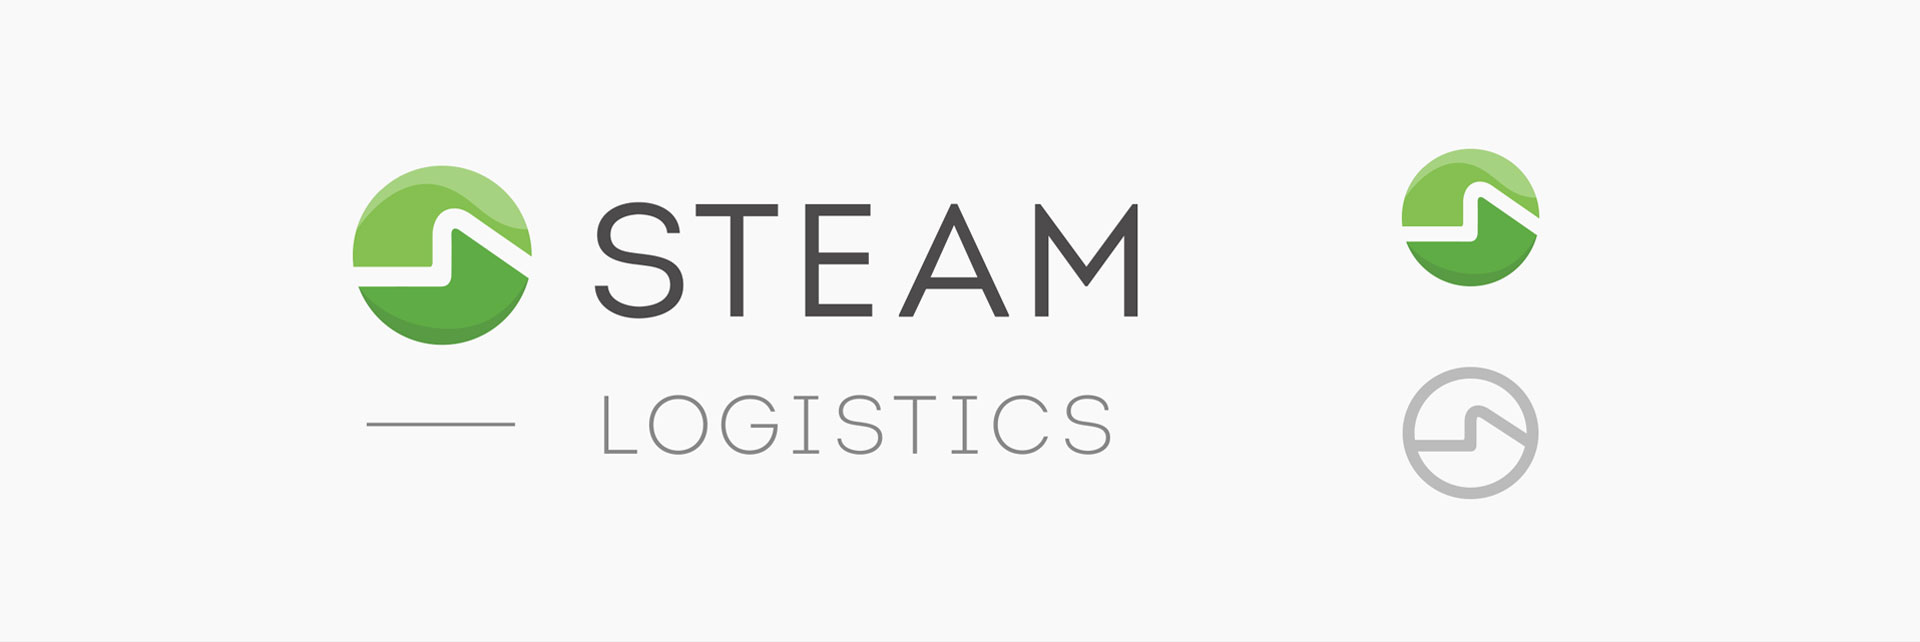 Tiny Giant - Steam Logistics - Brand Identity